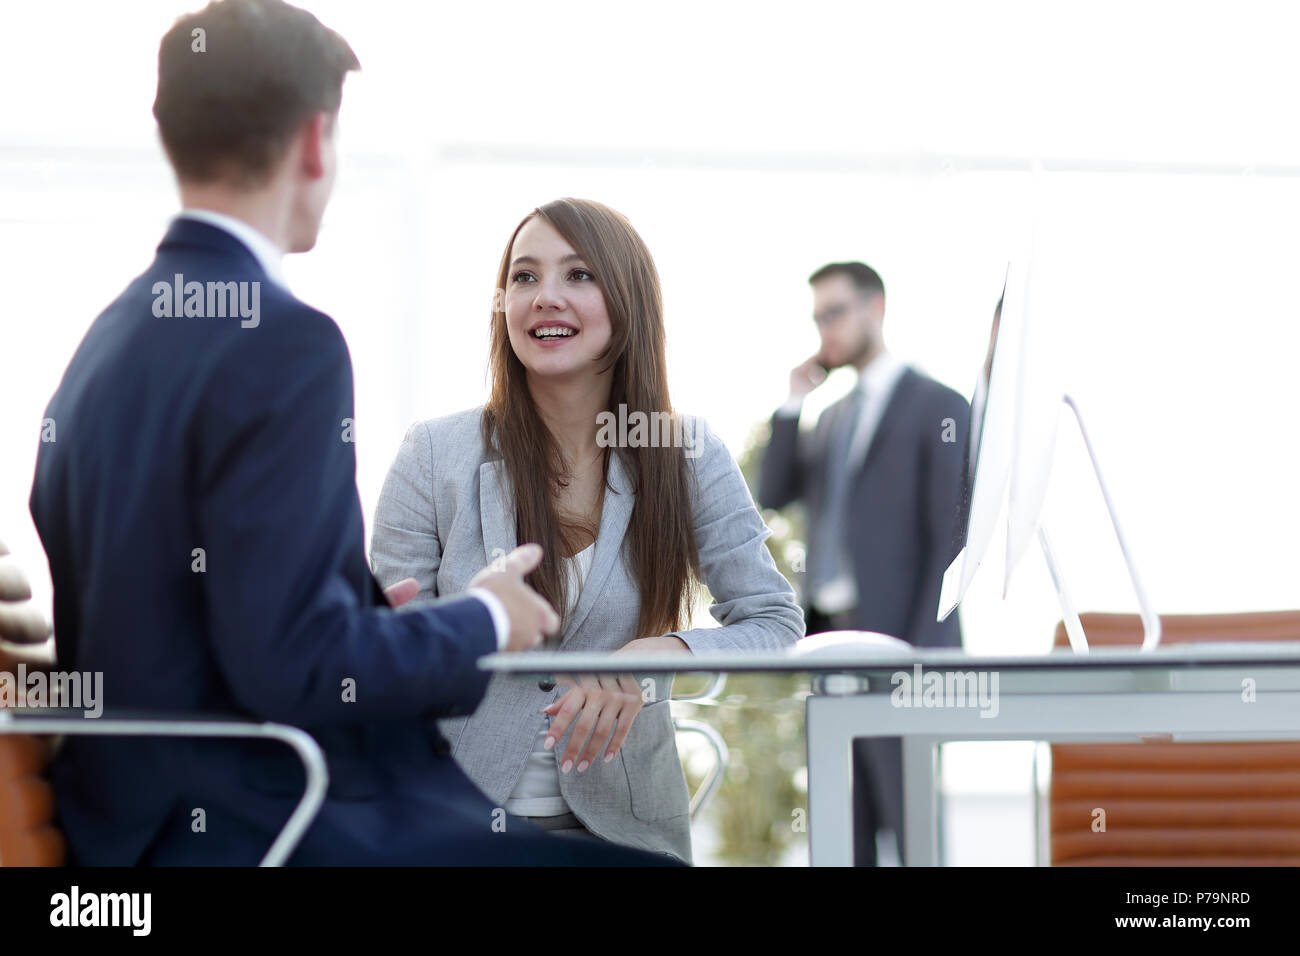 business woman shaking hands with a business partner. - Stock Image